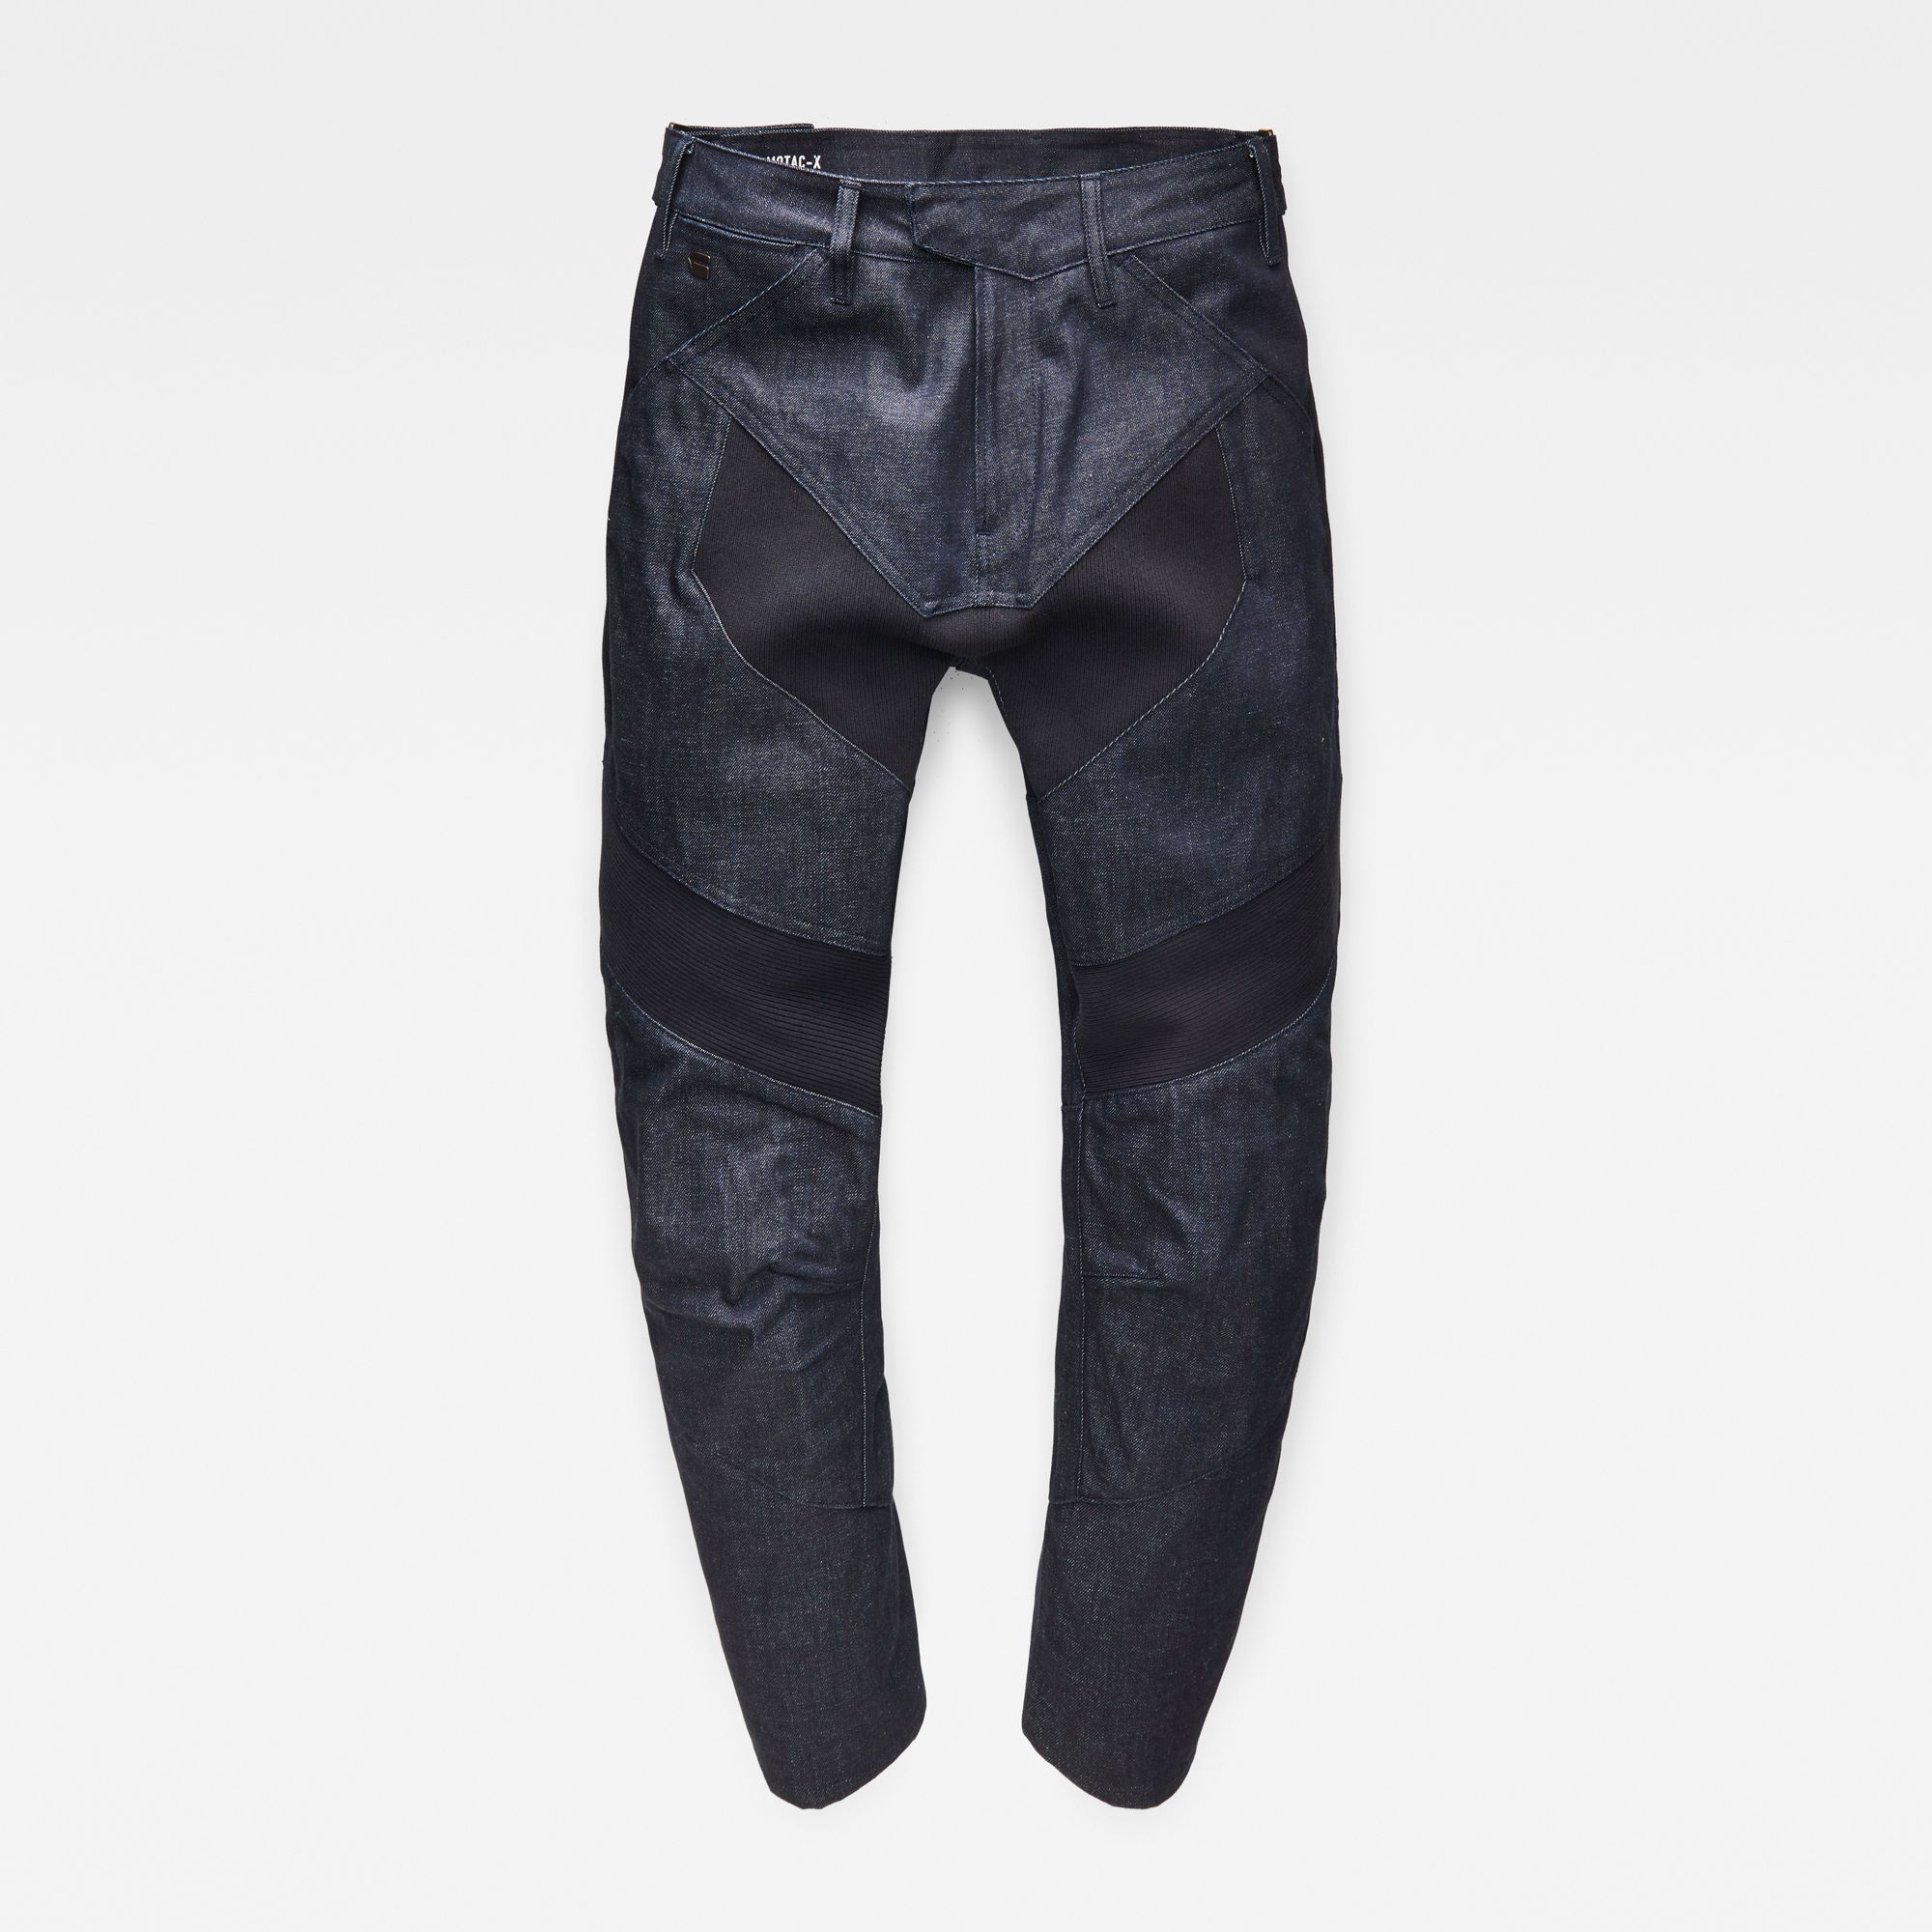 G-Star RAW Raw Essentials Motac-X 3D Tapered Cropped Jeans